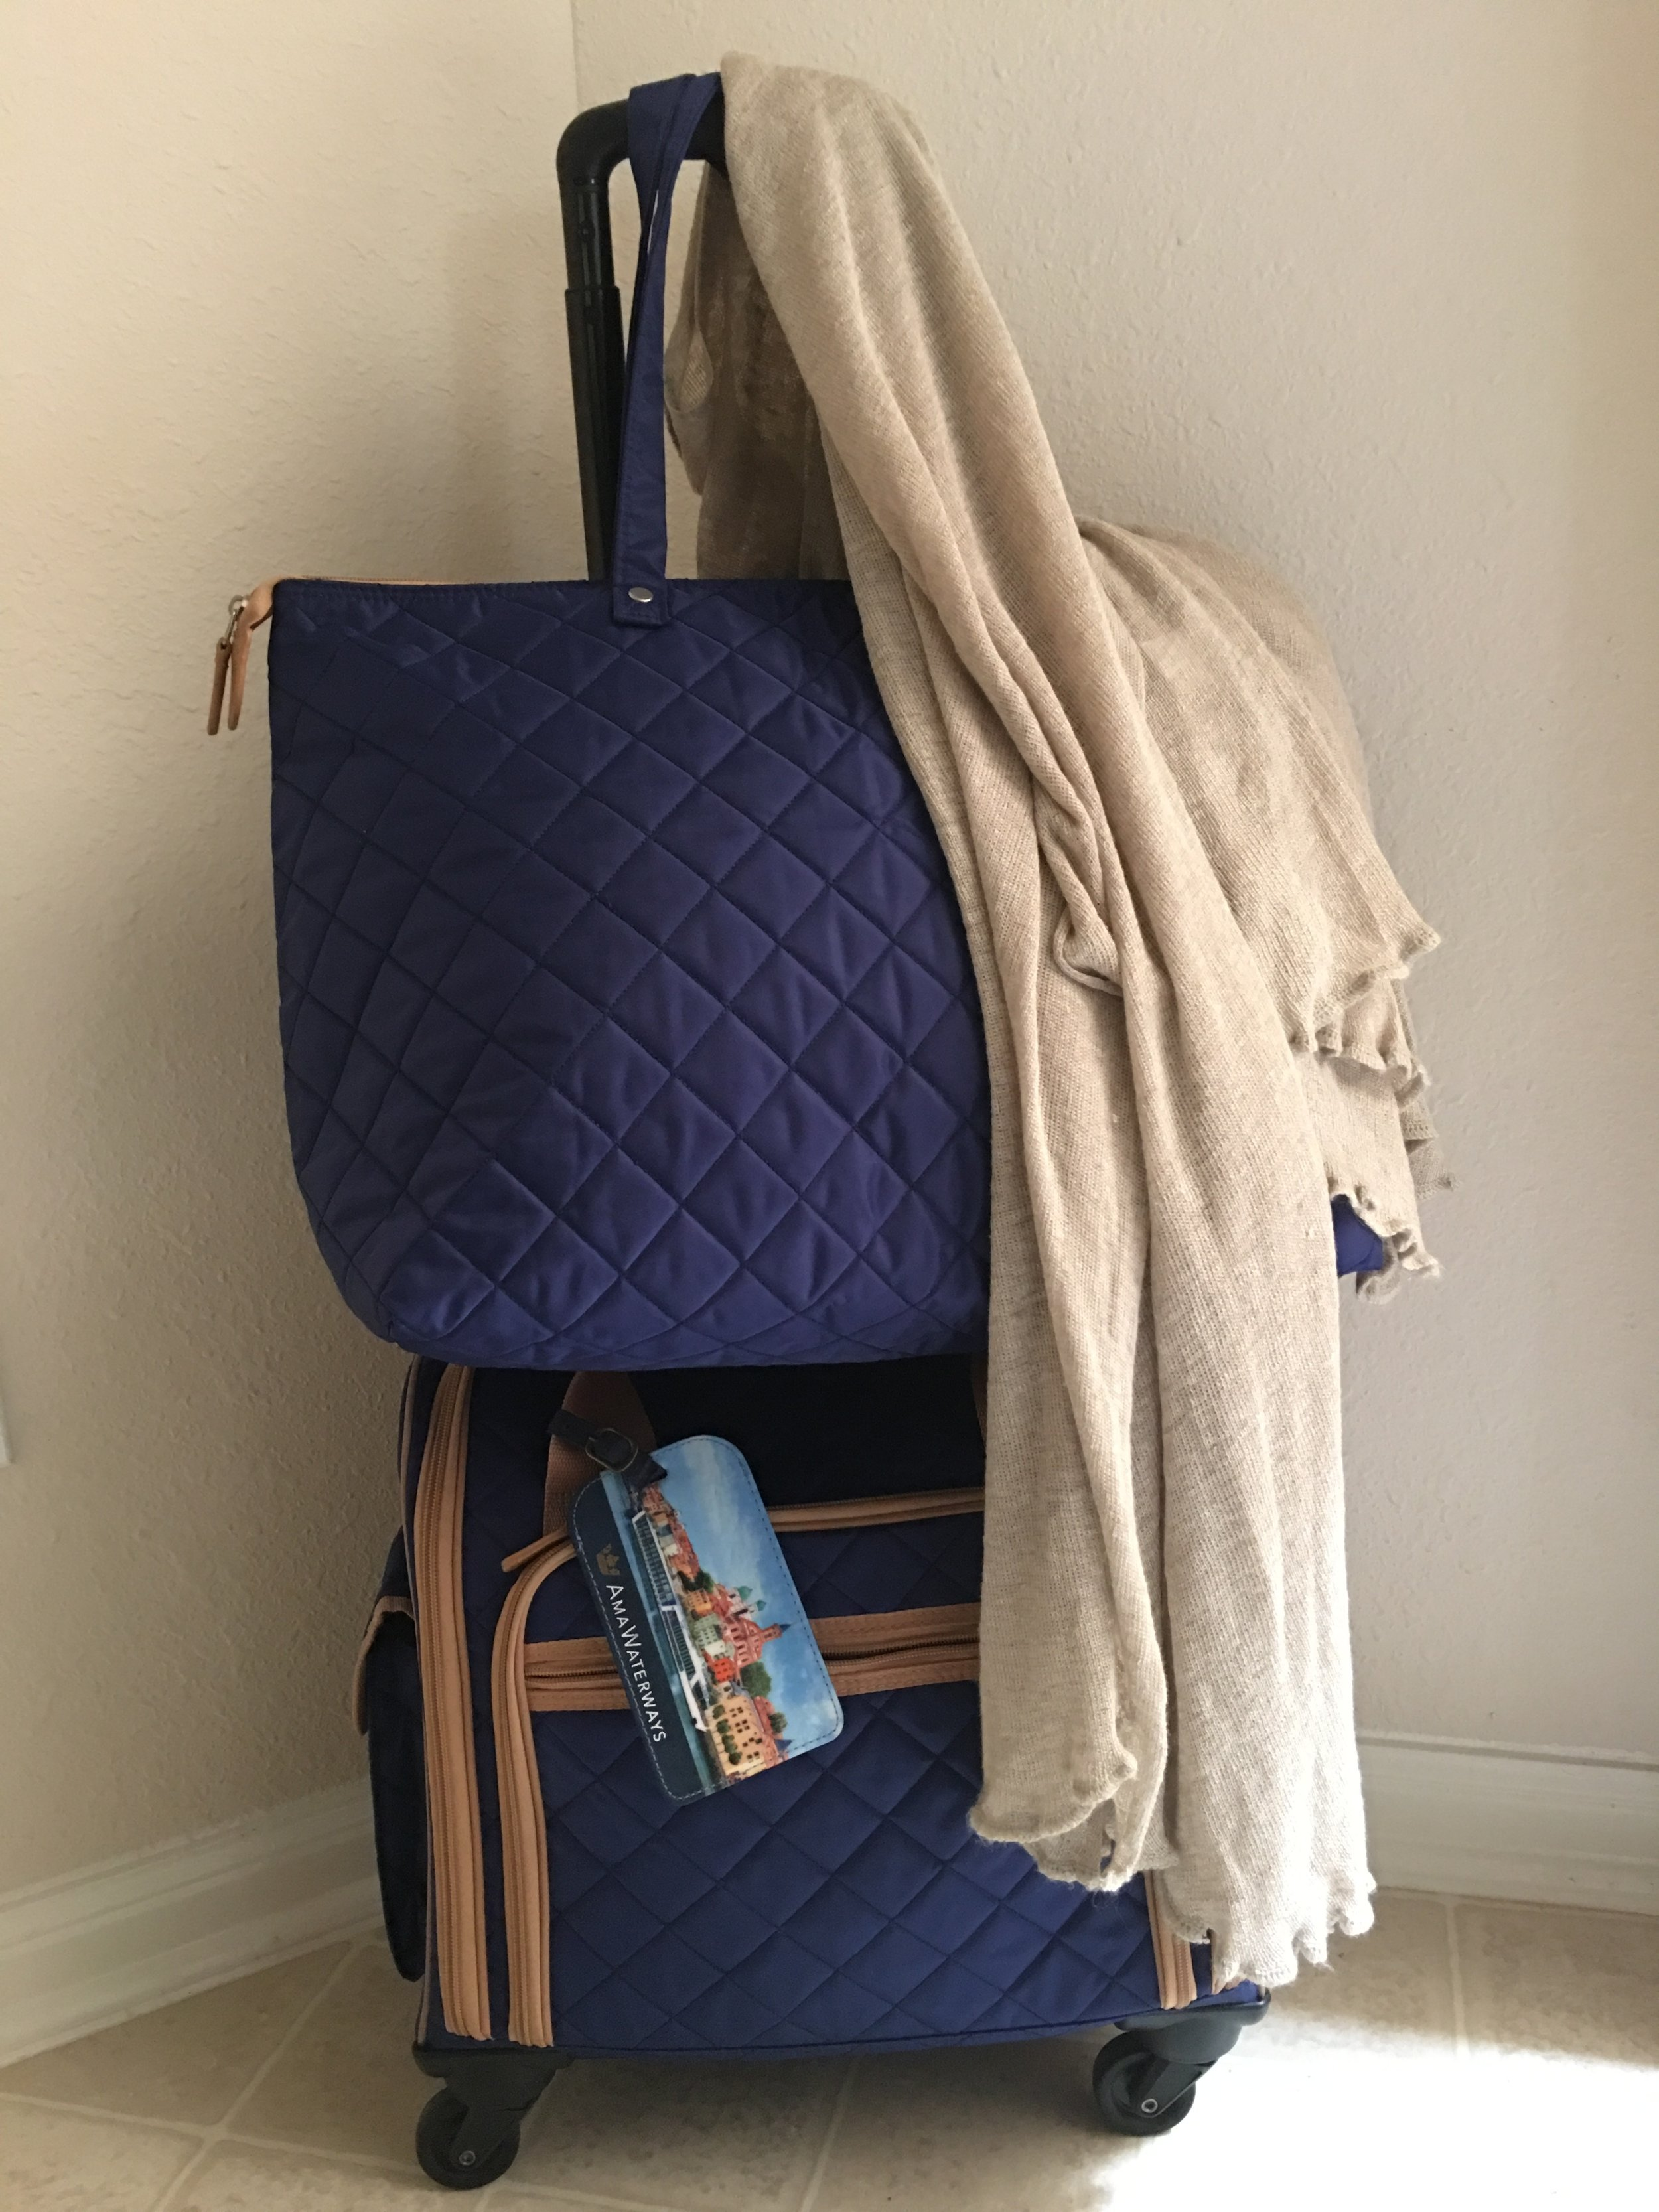 Anne's Rolling Carry-on bags when she travels to Europe